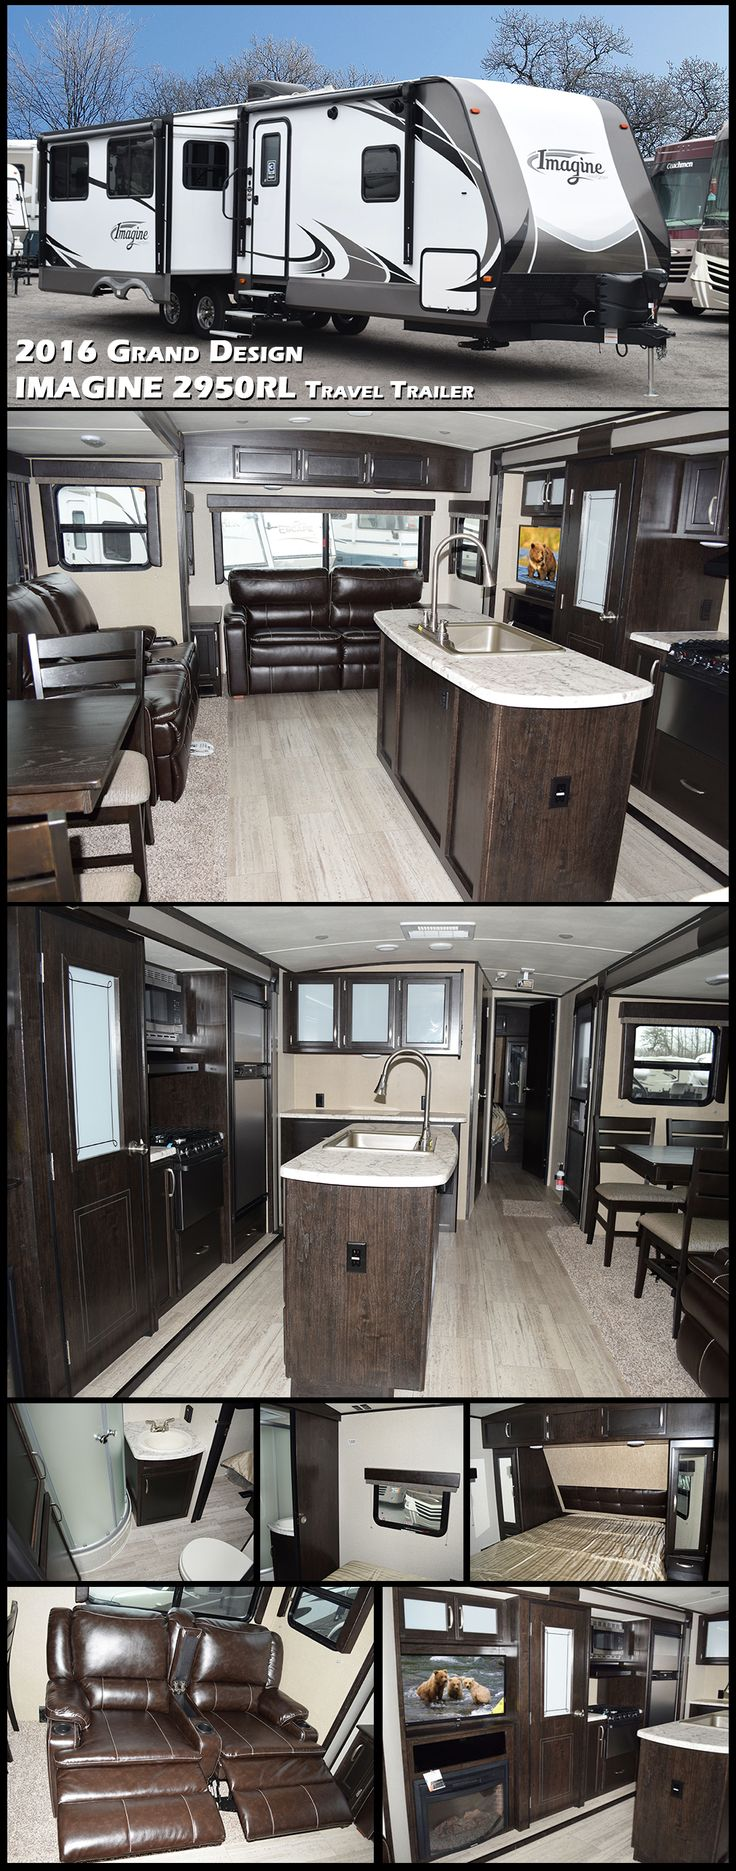 "Imagine yourself camping in this 2016 Grand Design IMAGINE 2950RL Travel Trailer. This rear living model offers sleeping for six, theater seating for two with center cup holders and a rear 72"" hide-a-bed sofa for your children or overnight guests. Adjacent is a second living area slide out that features an entertainment center with a 32"" LED TV which is easily viewable from any seating in this space."